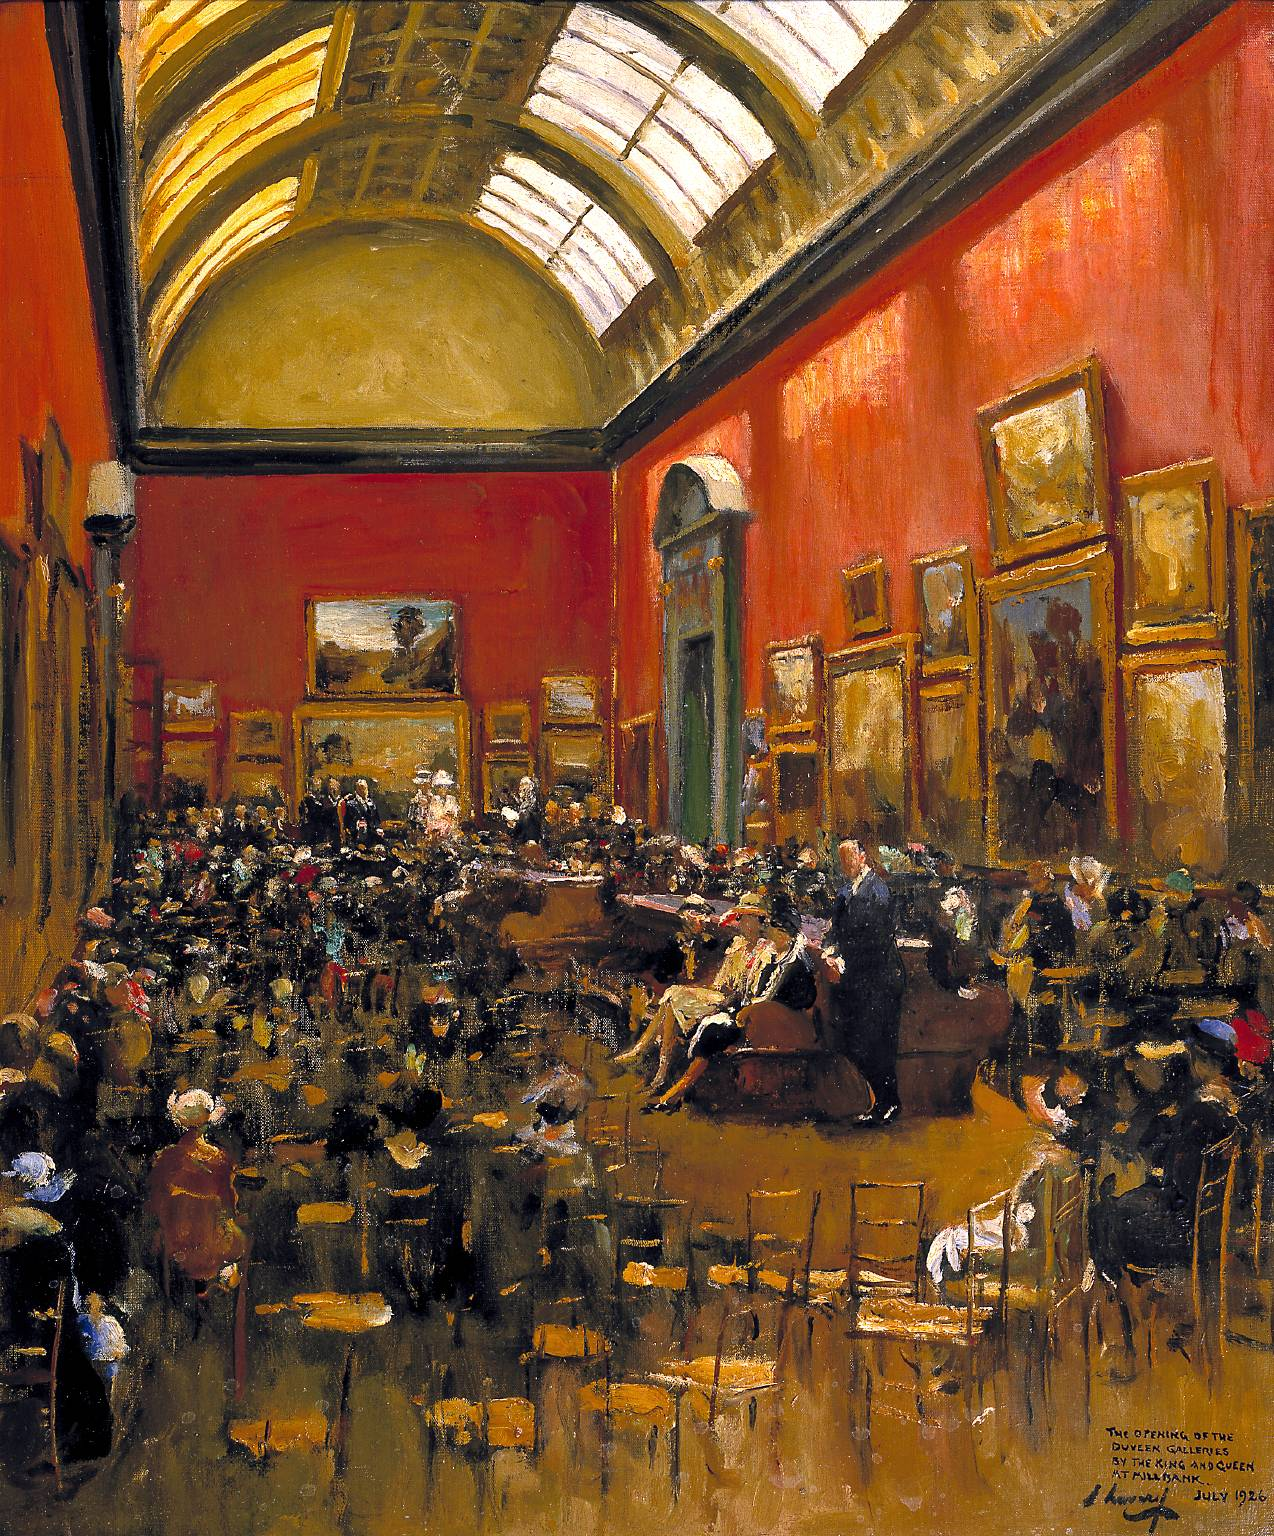 King George V, Accompanied by Queen Mary, at the Opening of the Modern Foreign and Sargent Galleries at the Tate Gallery, 26 June 1926 1926 Sir John Lavery 1856-1941 Presented by the executors of the estate of the Hon. Mrs Dorothy Rose Burns 1987 http://www.tate.org.uk/art/work/T04906